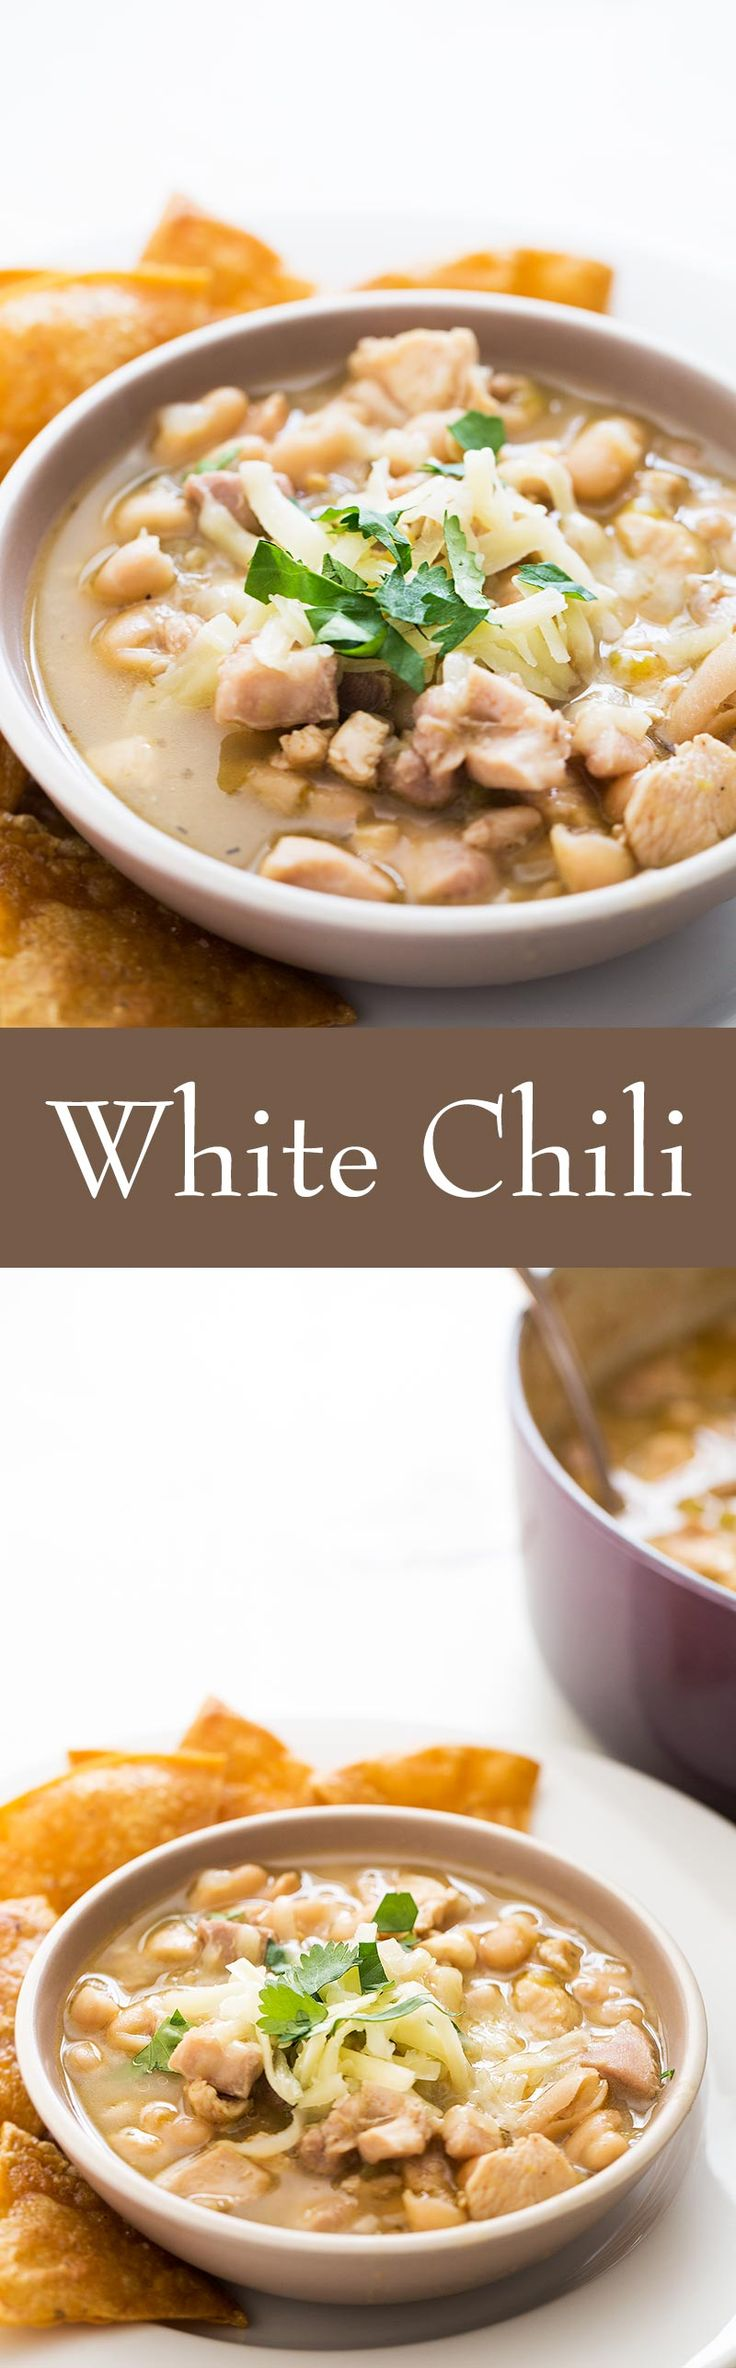 EASY white chili! With white beans, chicken, garlic, onions, green chiles, and Monterey jack cheese. Great for feeding a crowd on #GameDay #Superbowl On SimplyRecipes.com #glutenfree